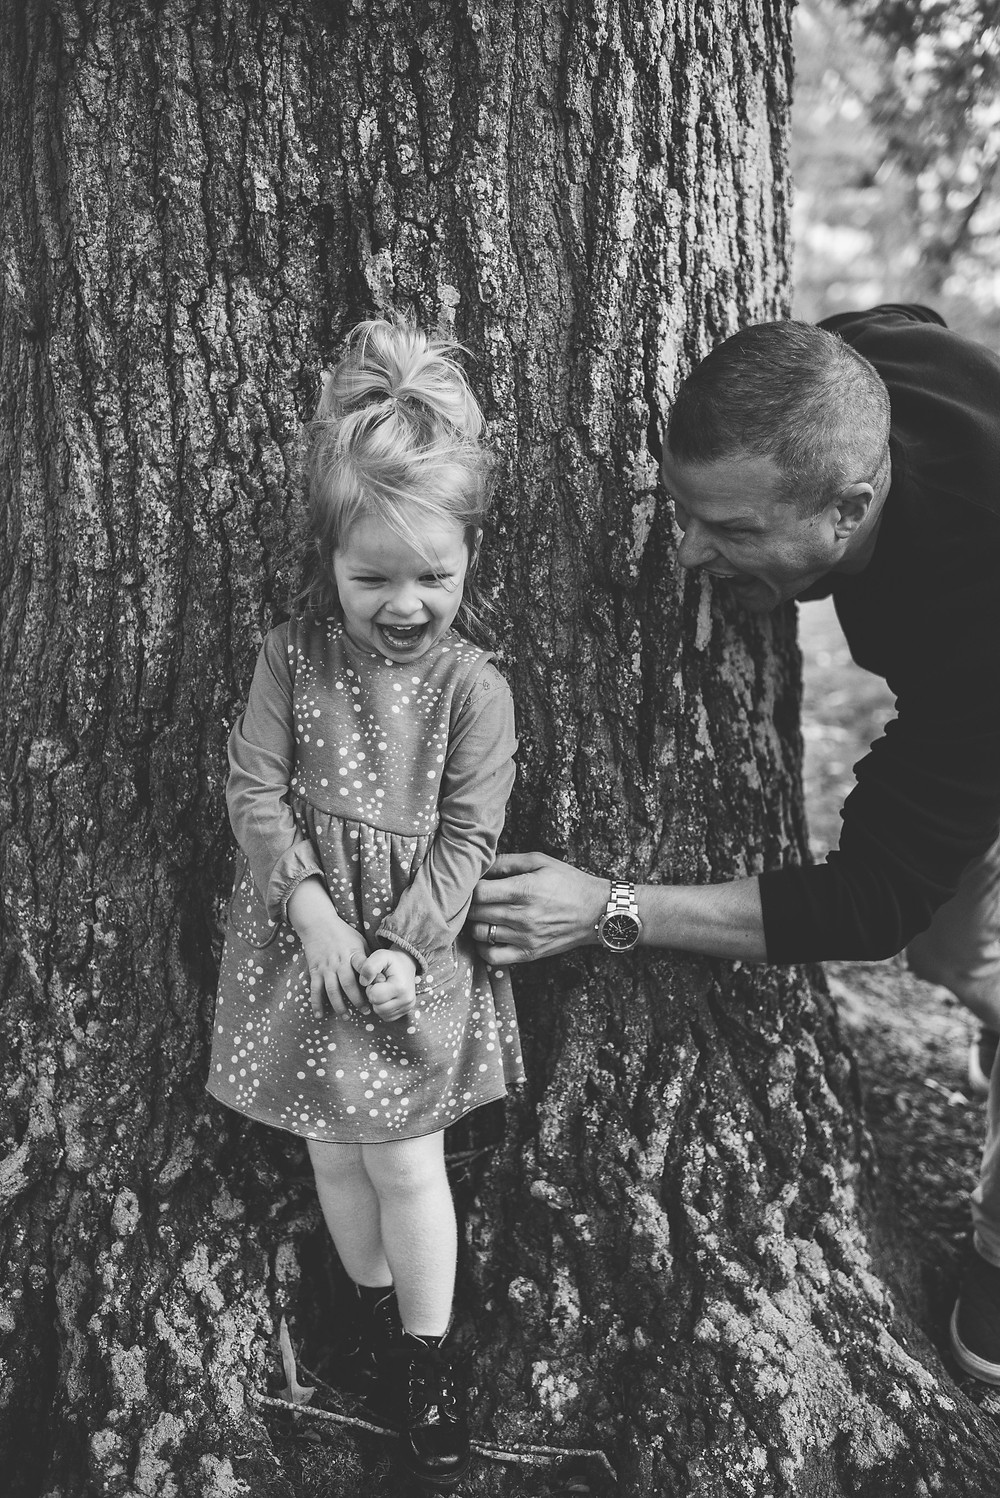 Dad surprises daughter behind tree trunk.